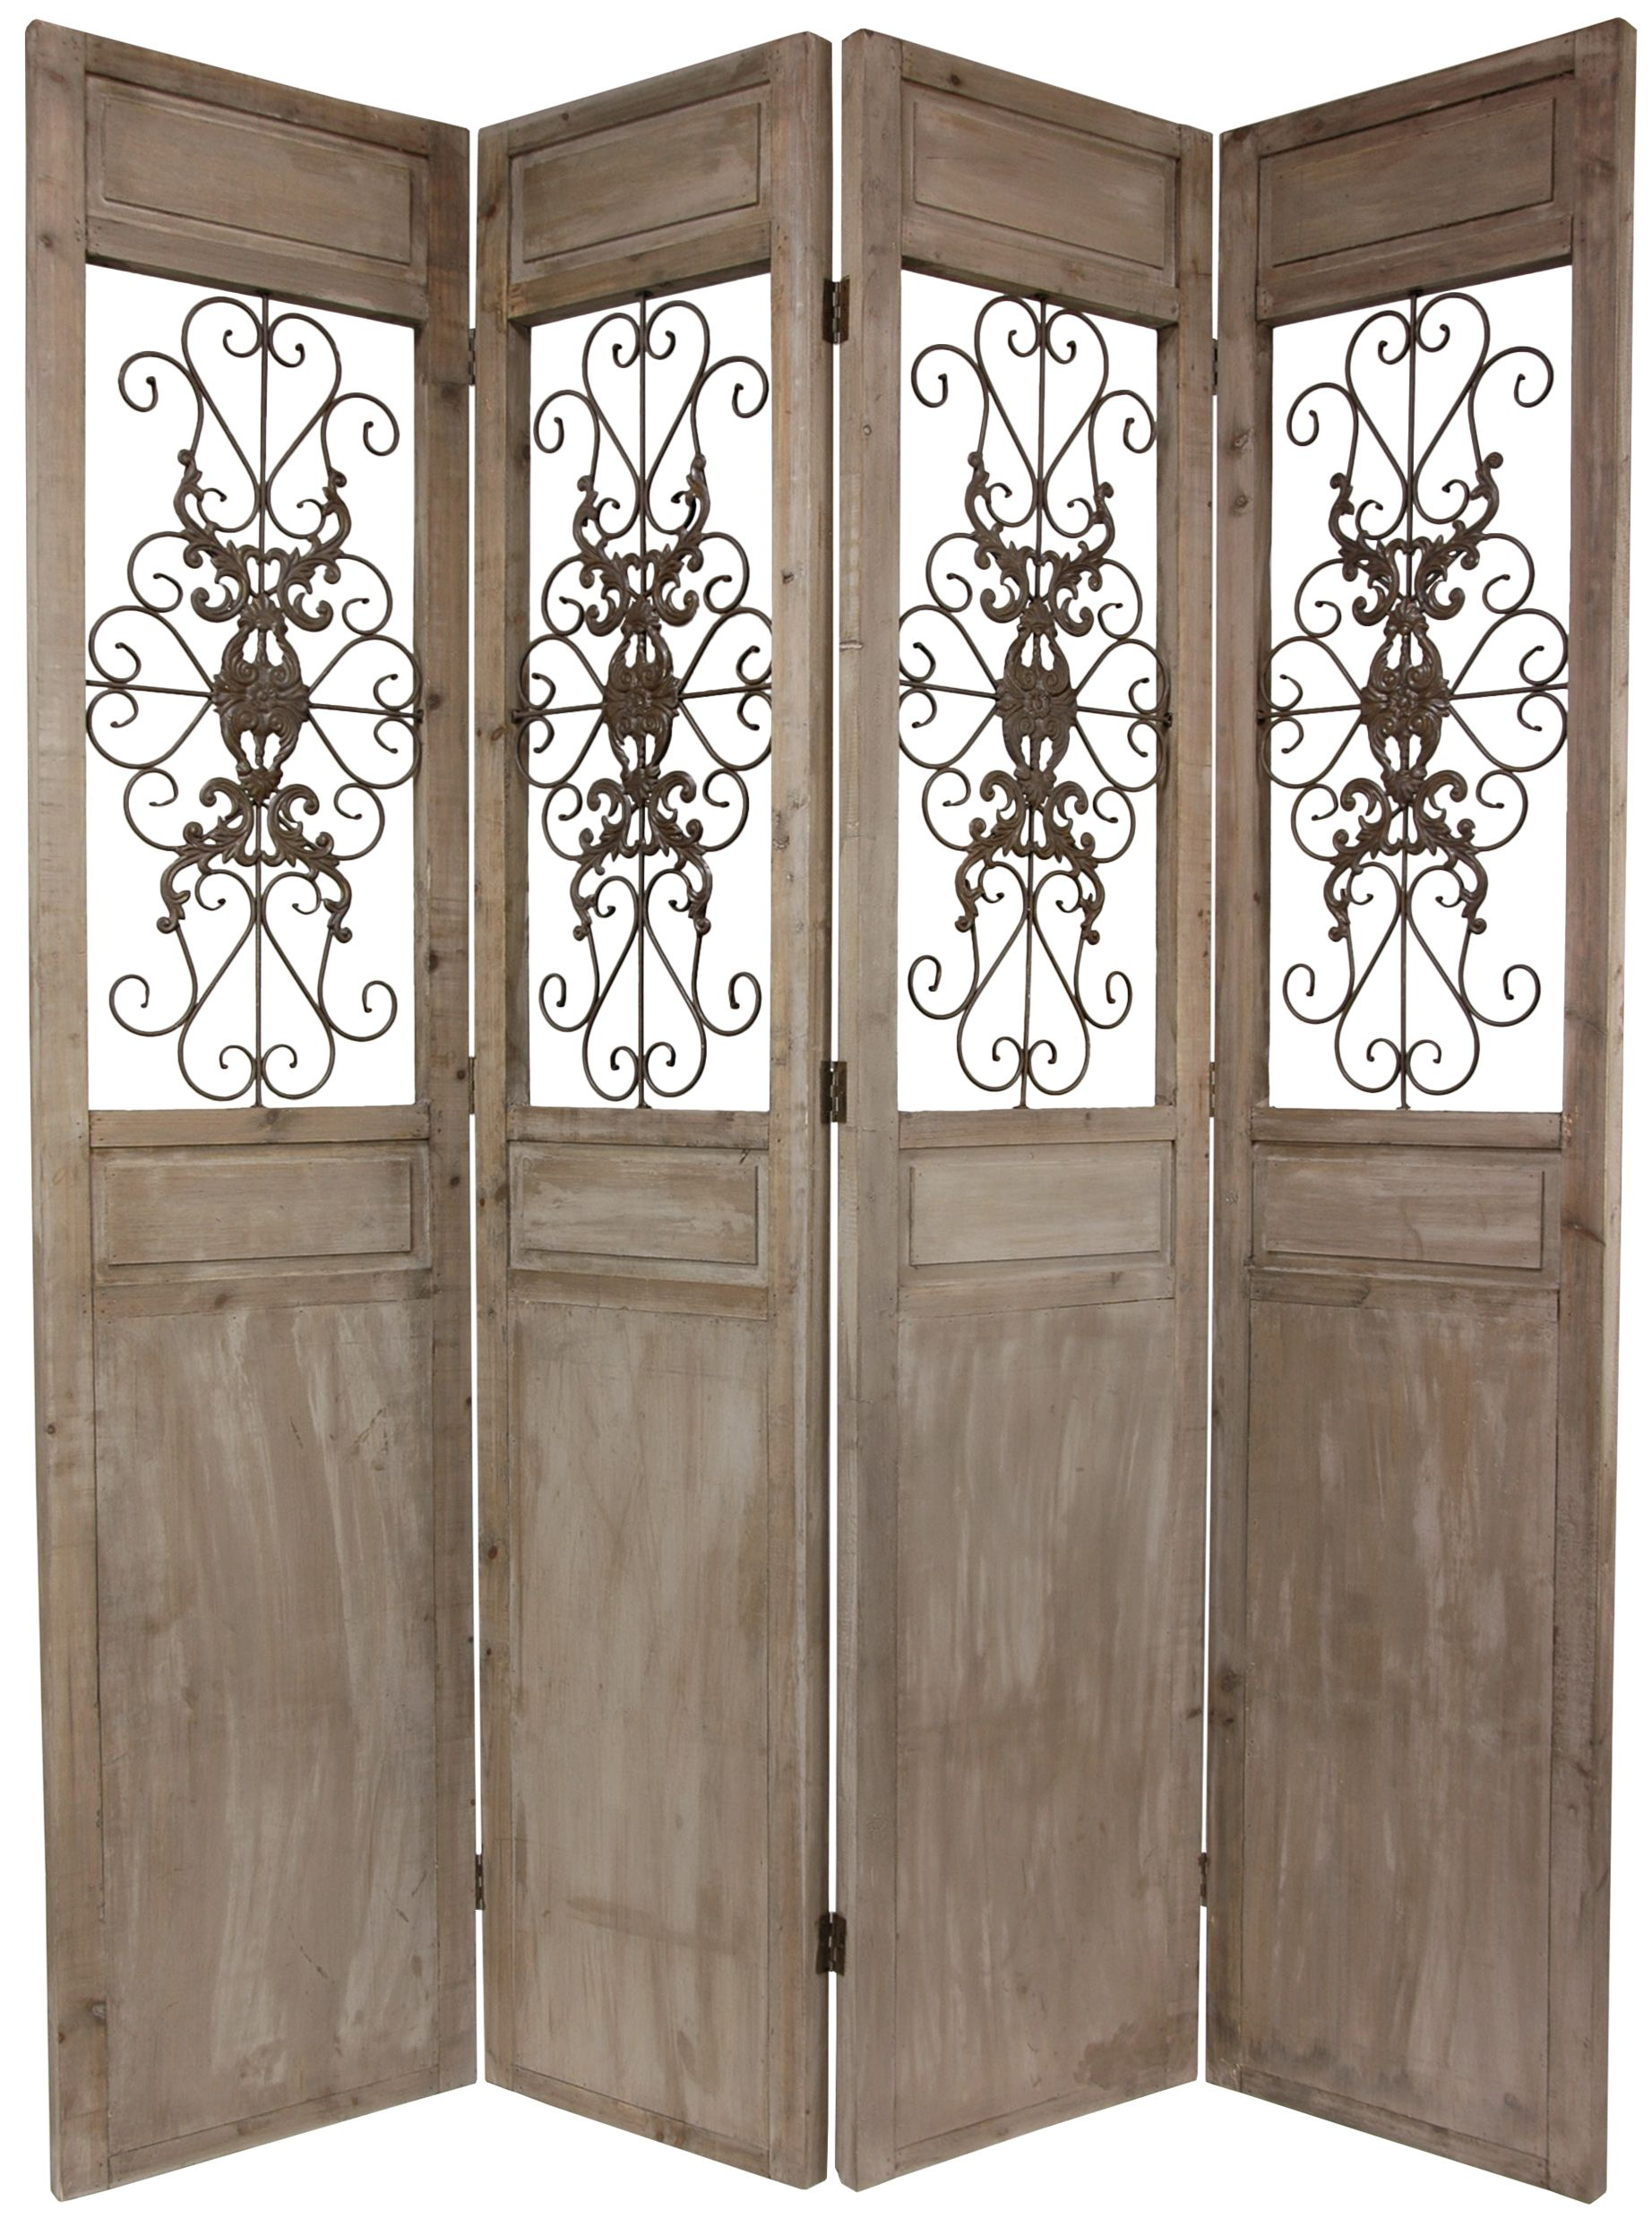 7 Ft Tall Railing Scrolls Room Divider In 2019 Wooden